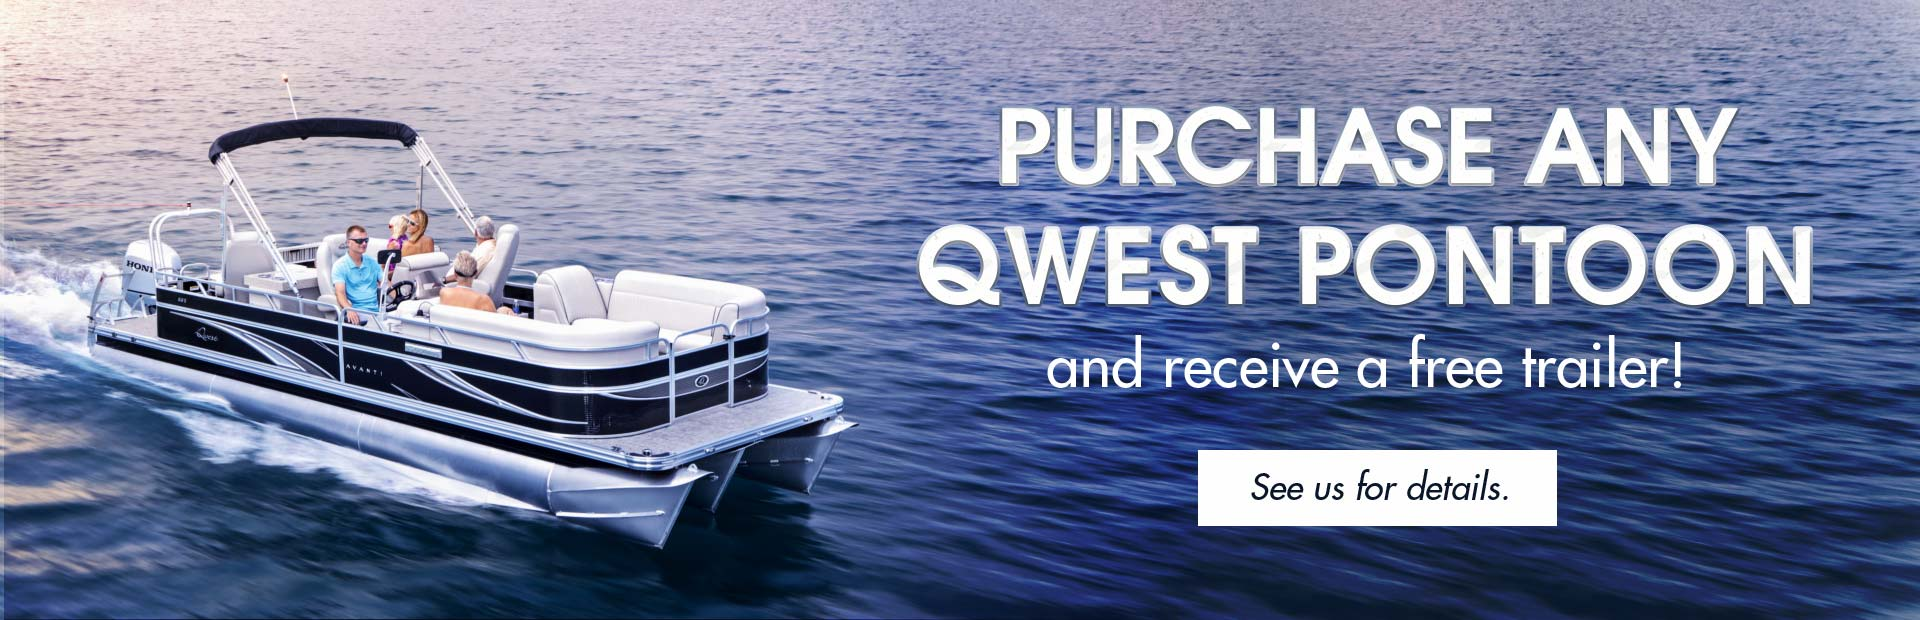 Purchase any Qwest Pontoon and receive a free trailer: Click here to view our models!